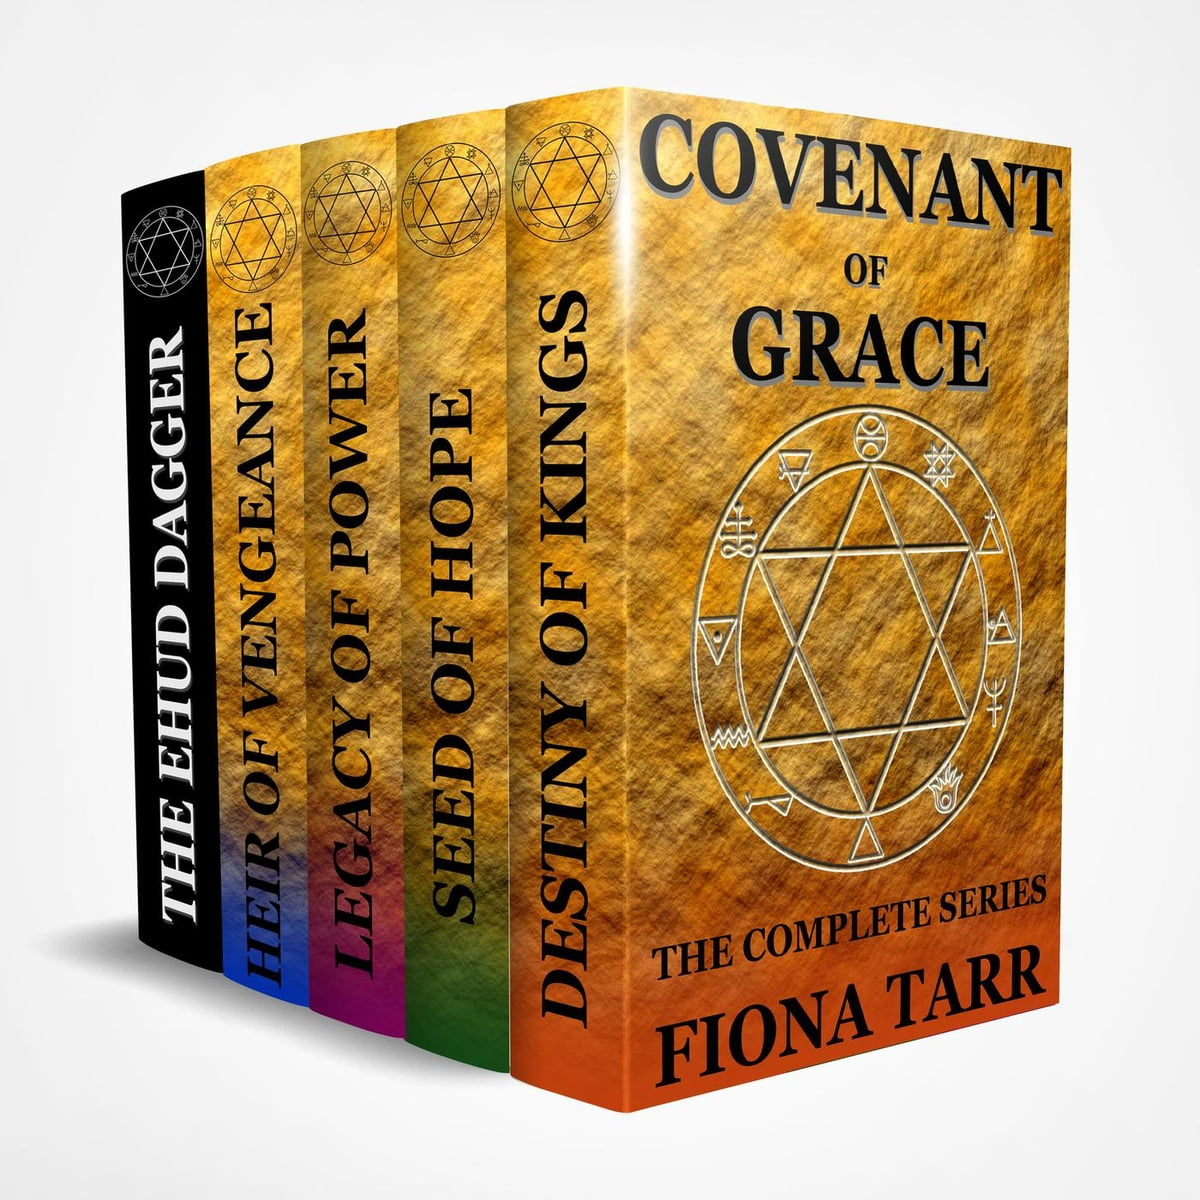 Covenant of Grace; The Complete Collection Vol 1-5 eBook by Fiona Tarr -  9781386347088 | Rakuten Kobo